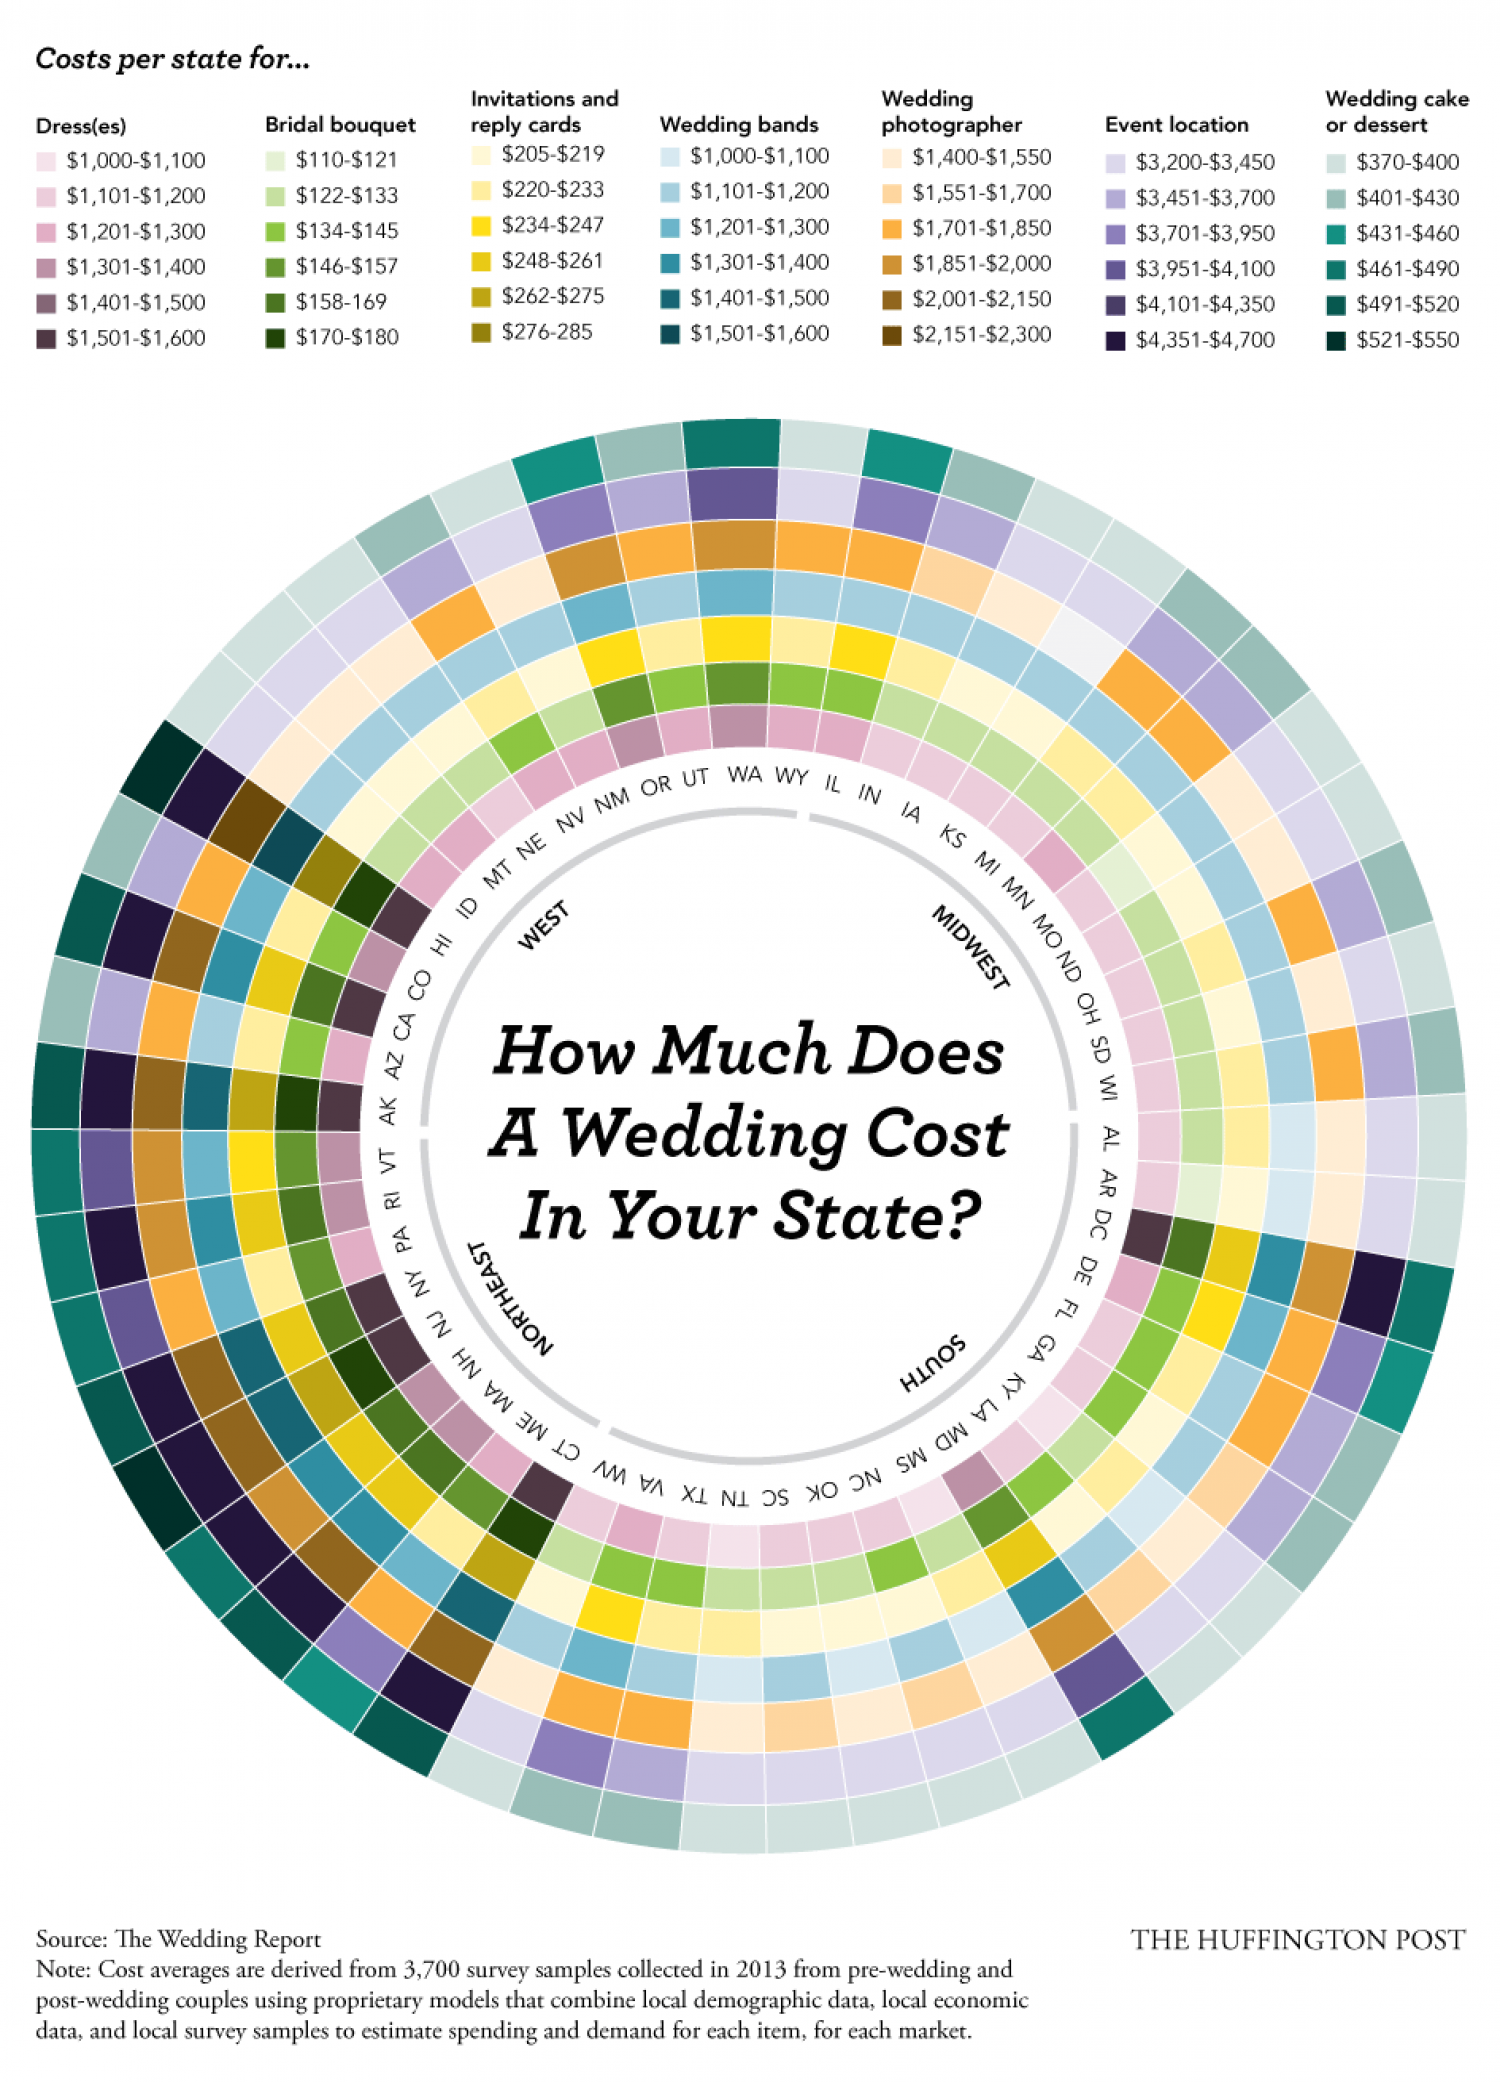 How much does a wedding cost in your state visual how much does a wedding cost in your state infographic junglespirit Choice Image